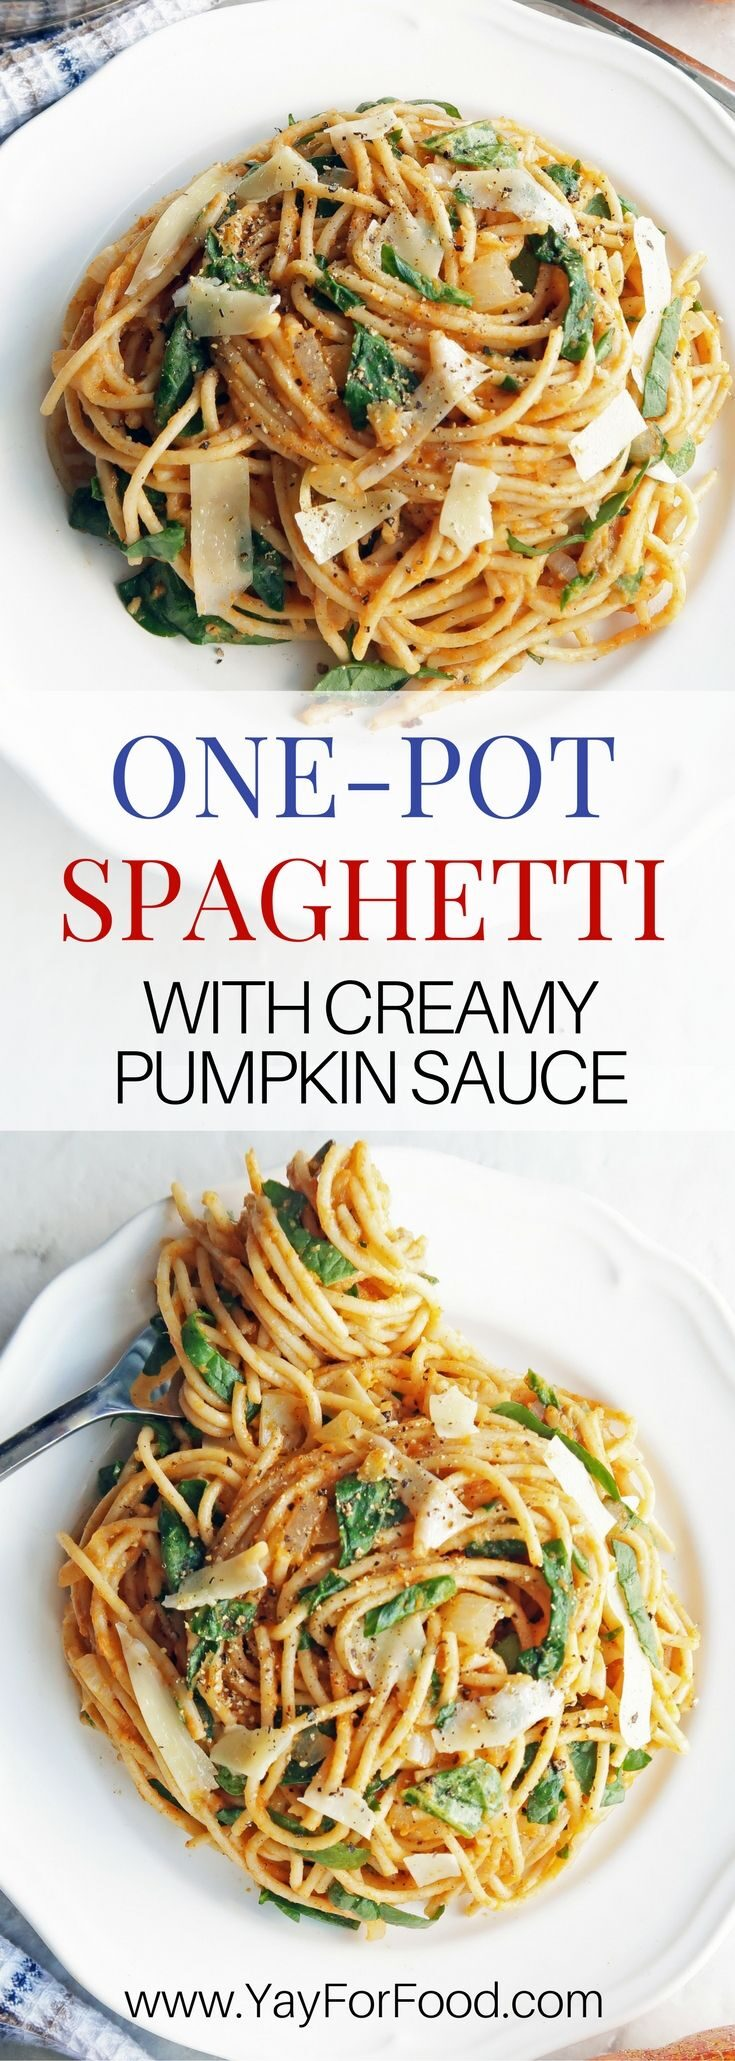 Pasta with creamy pumpkin sauce is ready in 25 minutes and made in one-pot. This savoury meal is perfect for a quick weekday dinner or a lazy weekend meal.